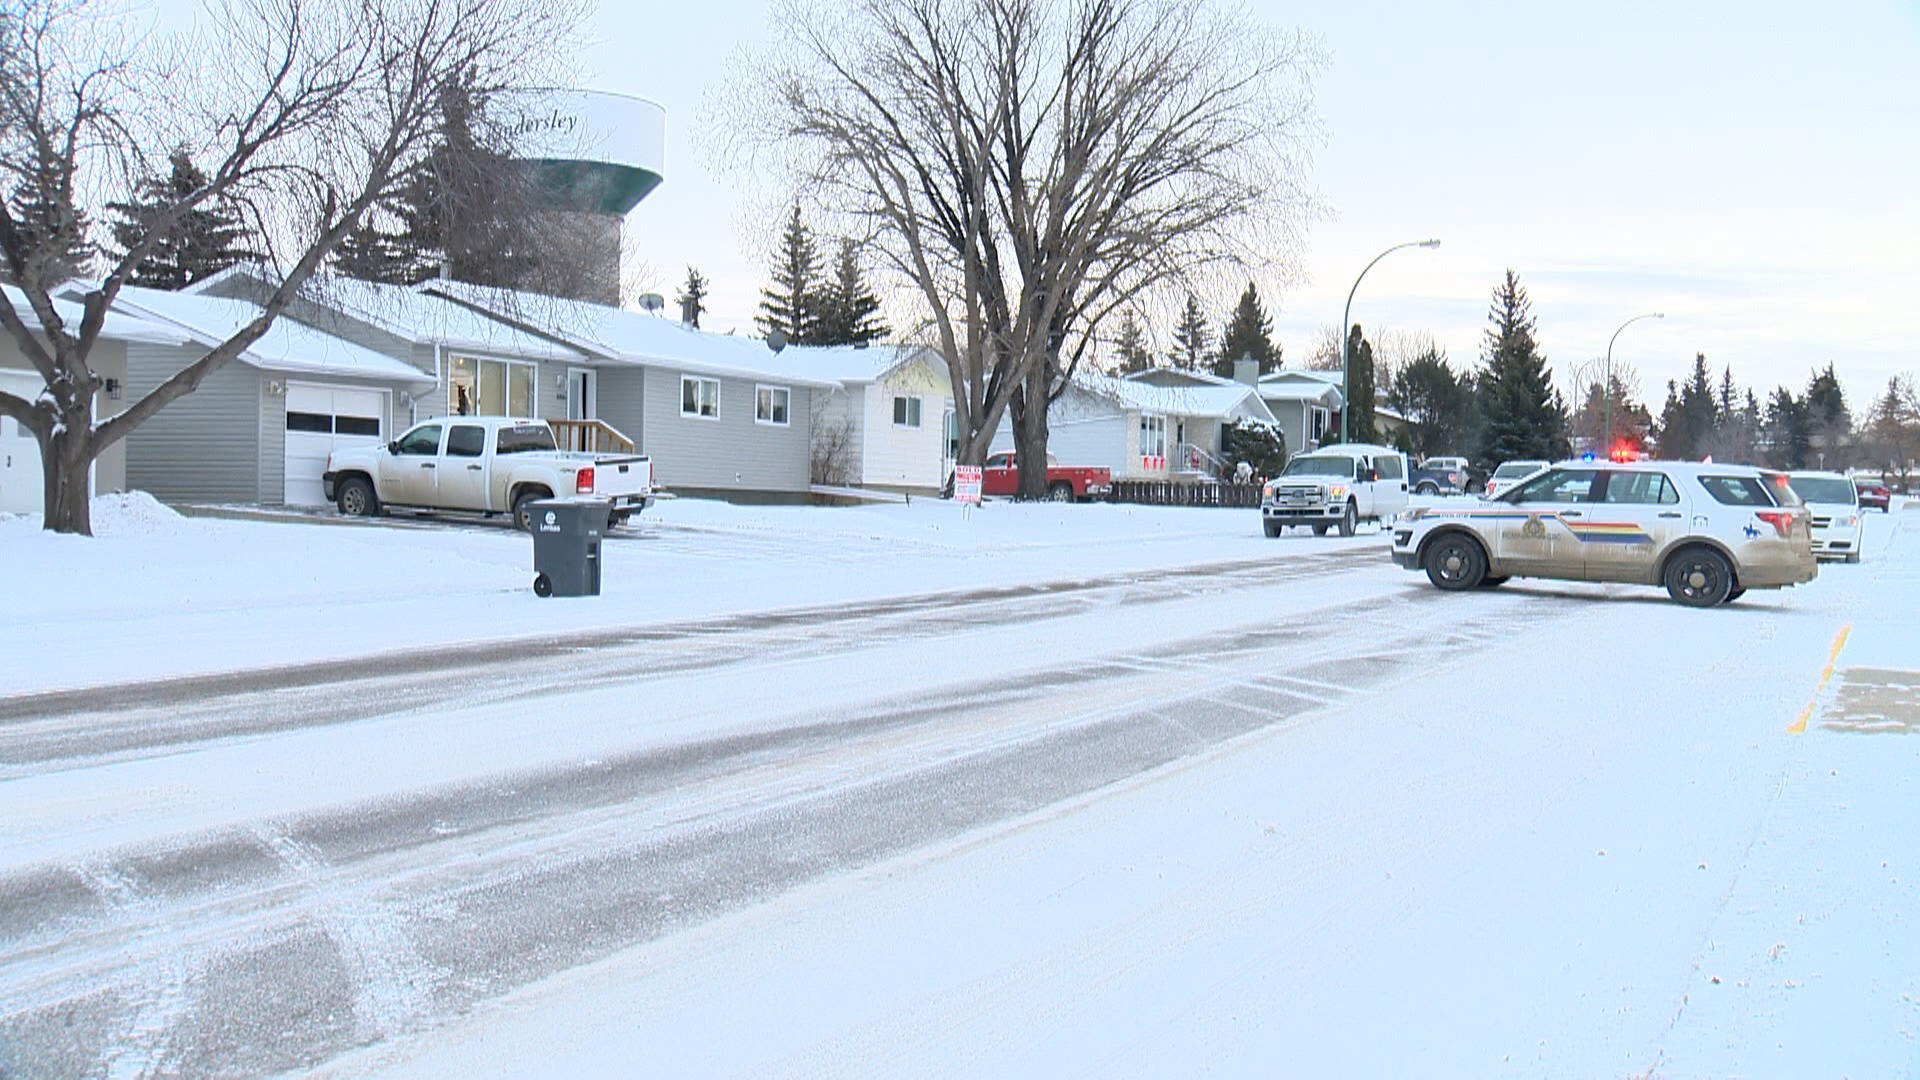 2 found dead in Kindersley, Sask. home after reported shooting